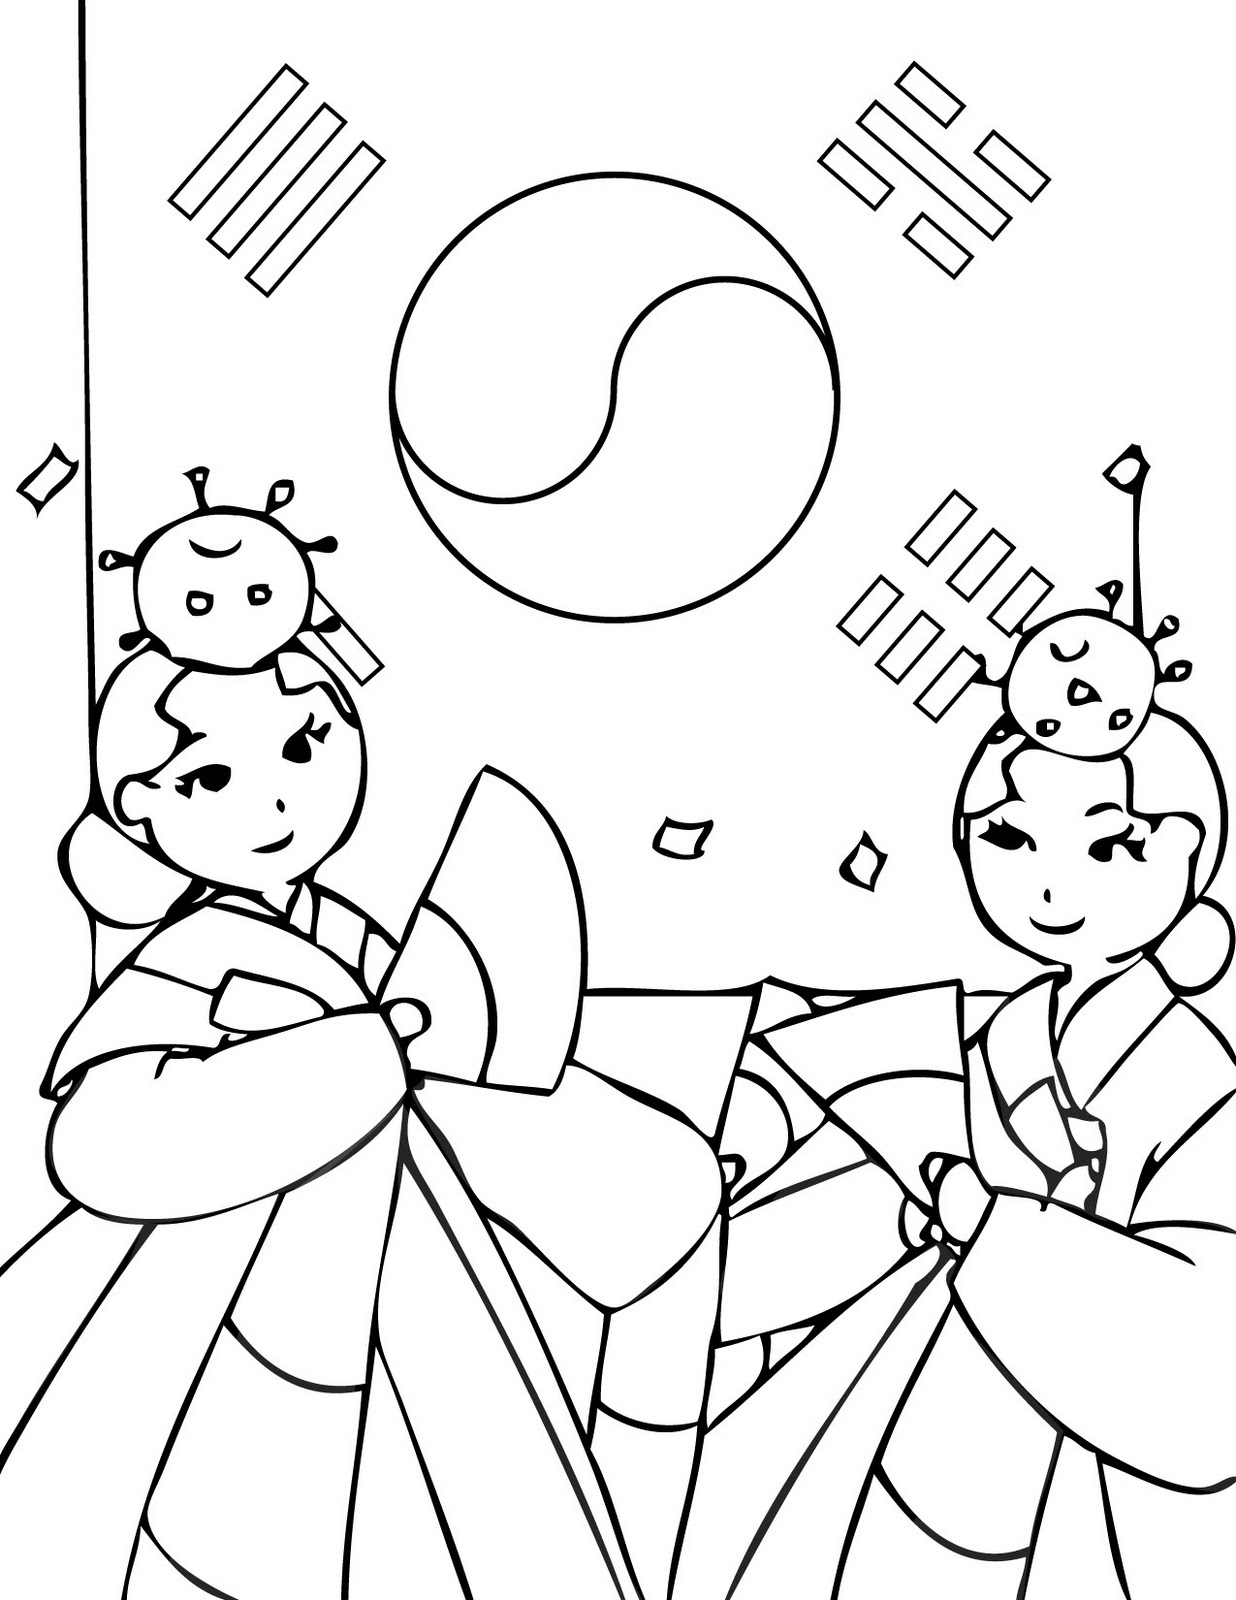 1236x1600 Awesome Coloring Pages Multi Cultural Friends Design Great